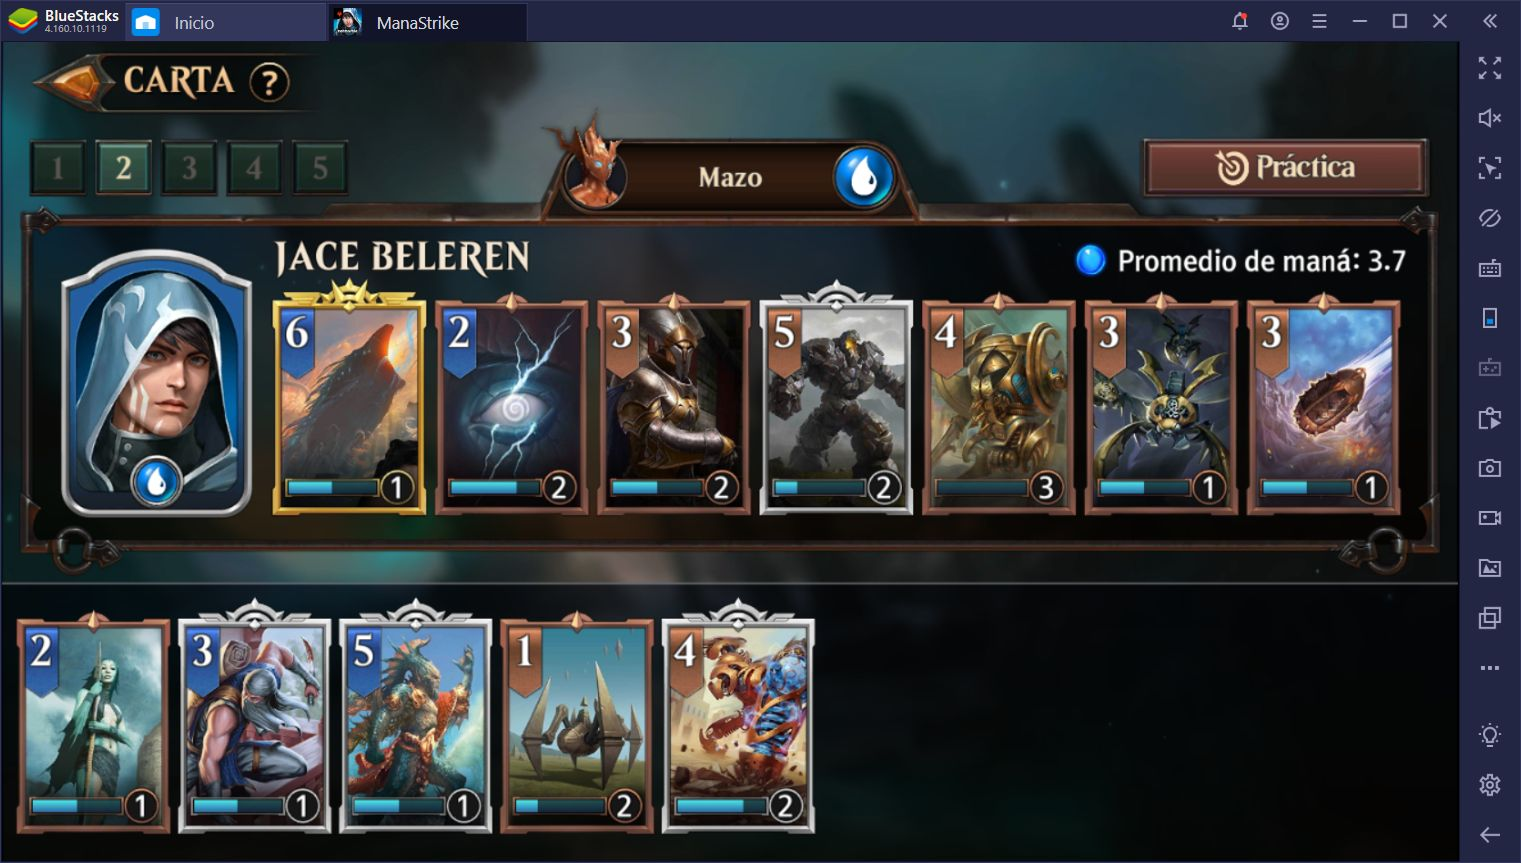 Cómo Usar BlueStacks Para Ganar en Magic: ManaStrike